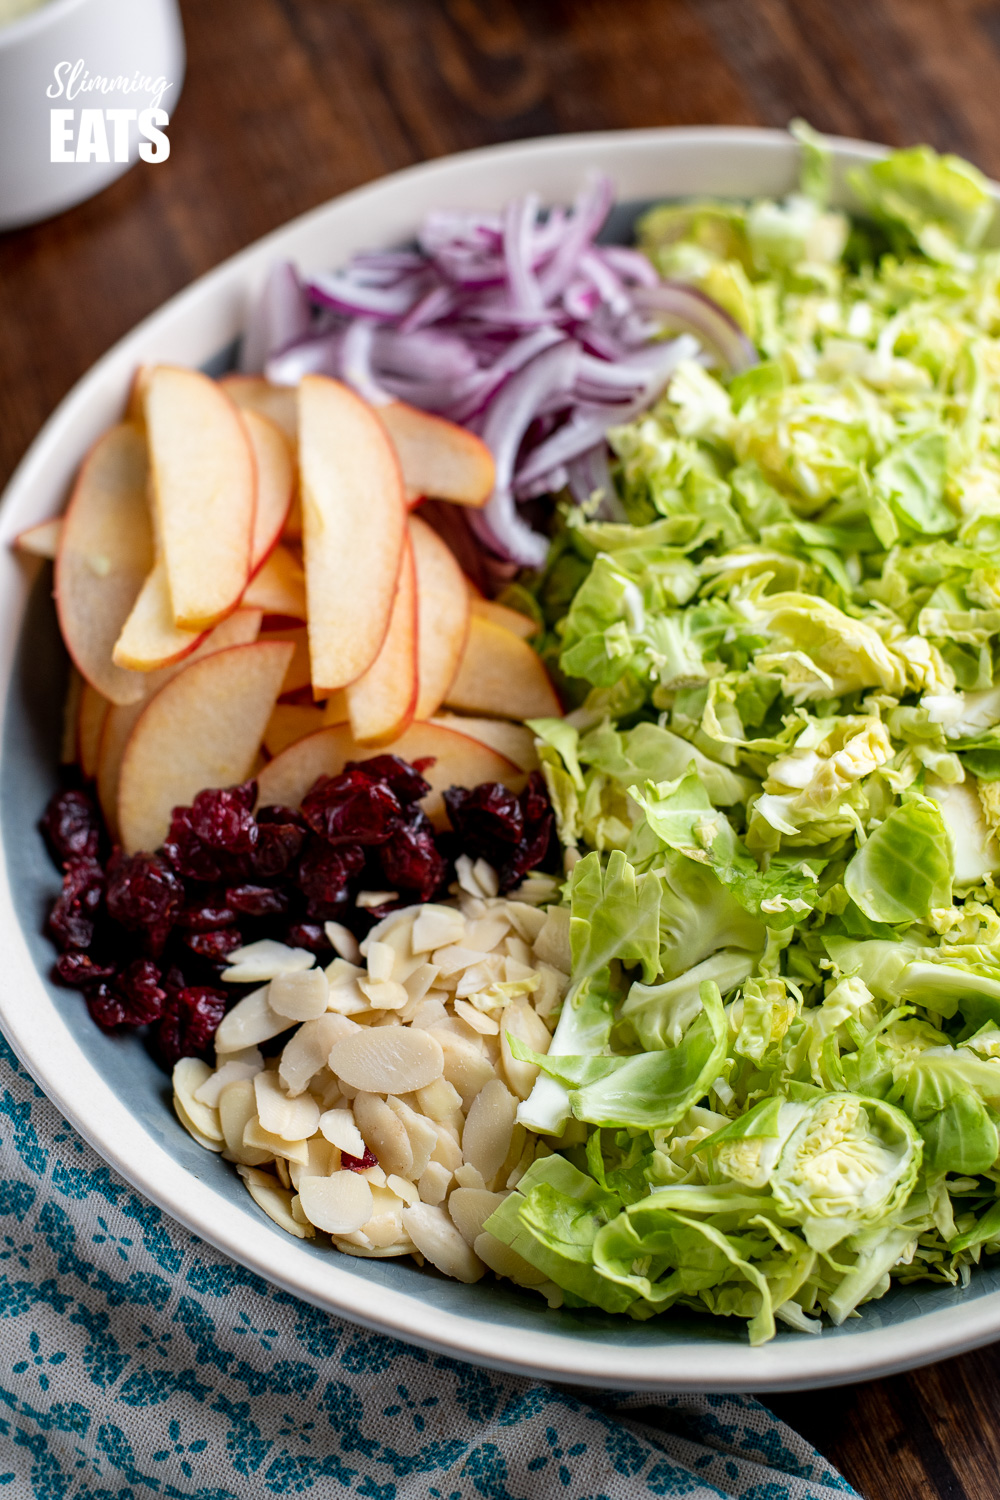 shredded brussels sprouts in a bowl with apples, red onion, almonds and cranberries